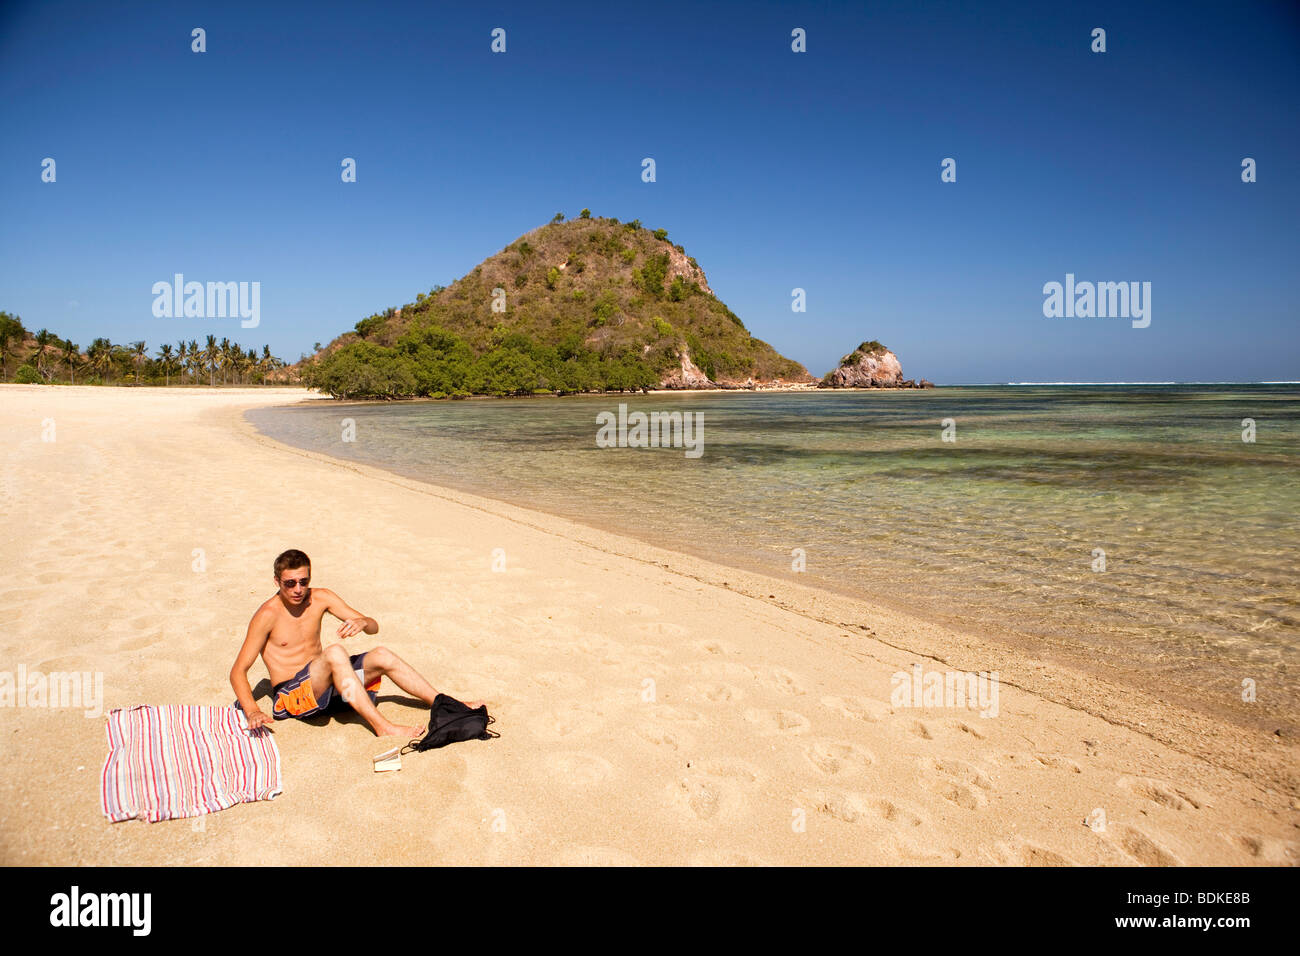 Indonesia, Lombok, Kuta, one solitary male sunbather on the beach Stock Photo